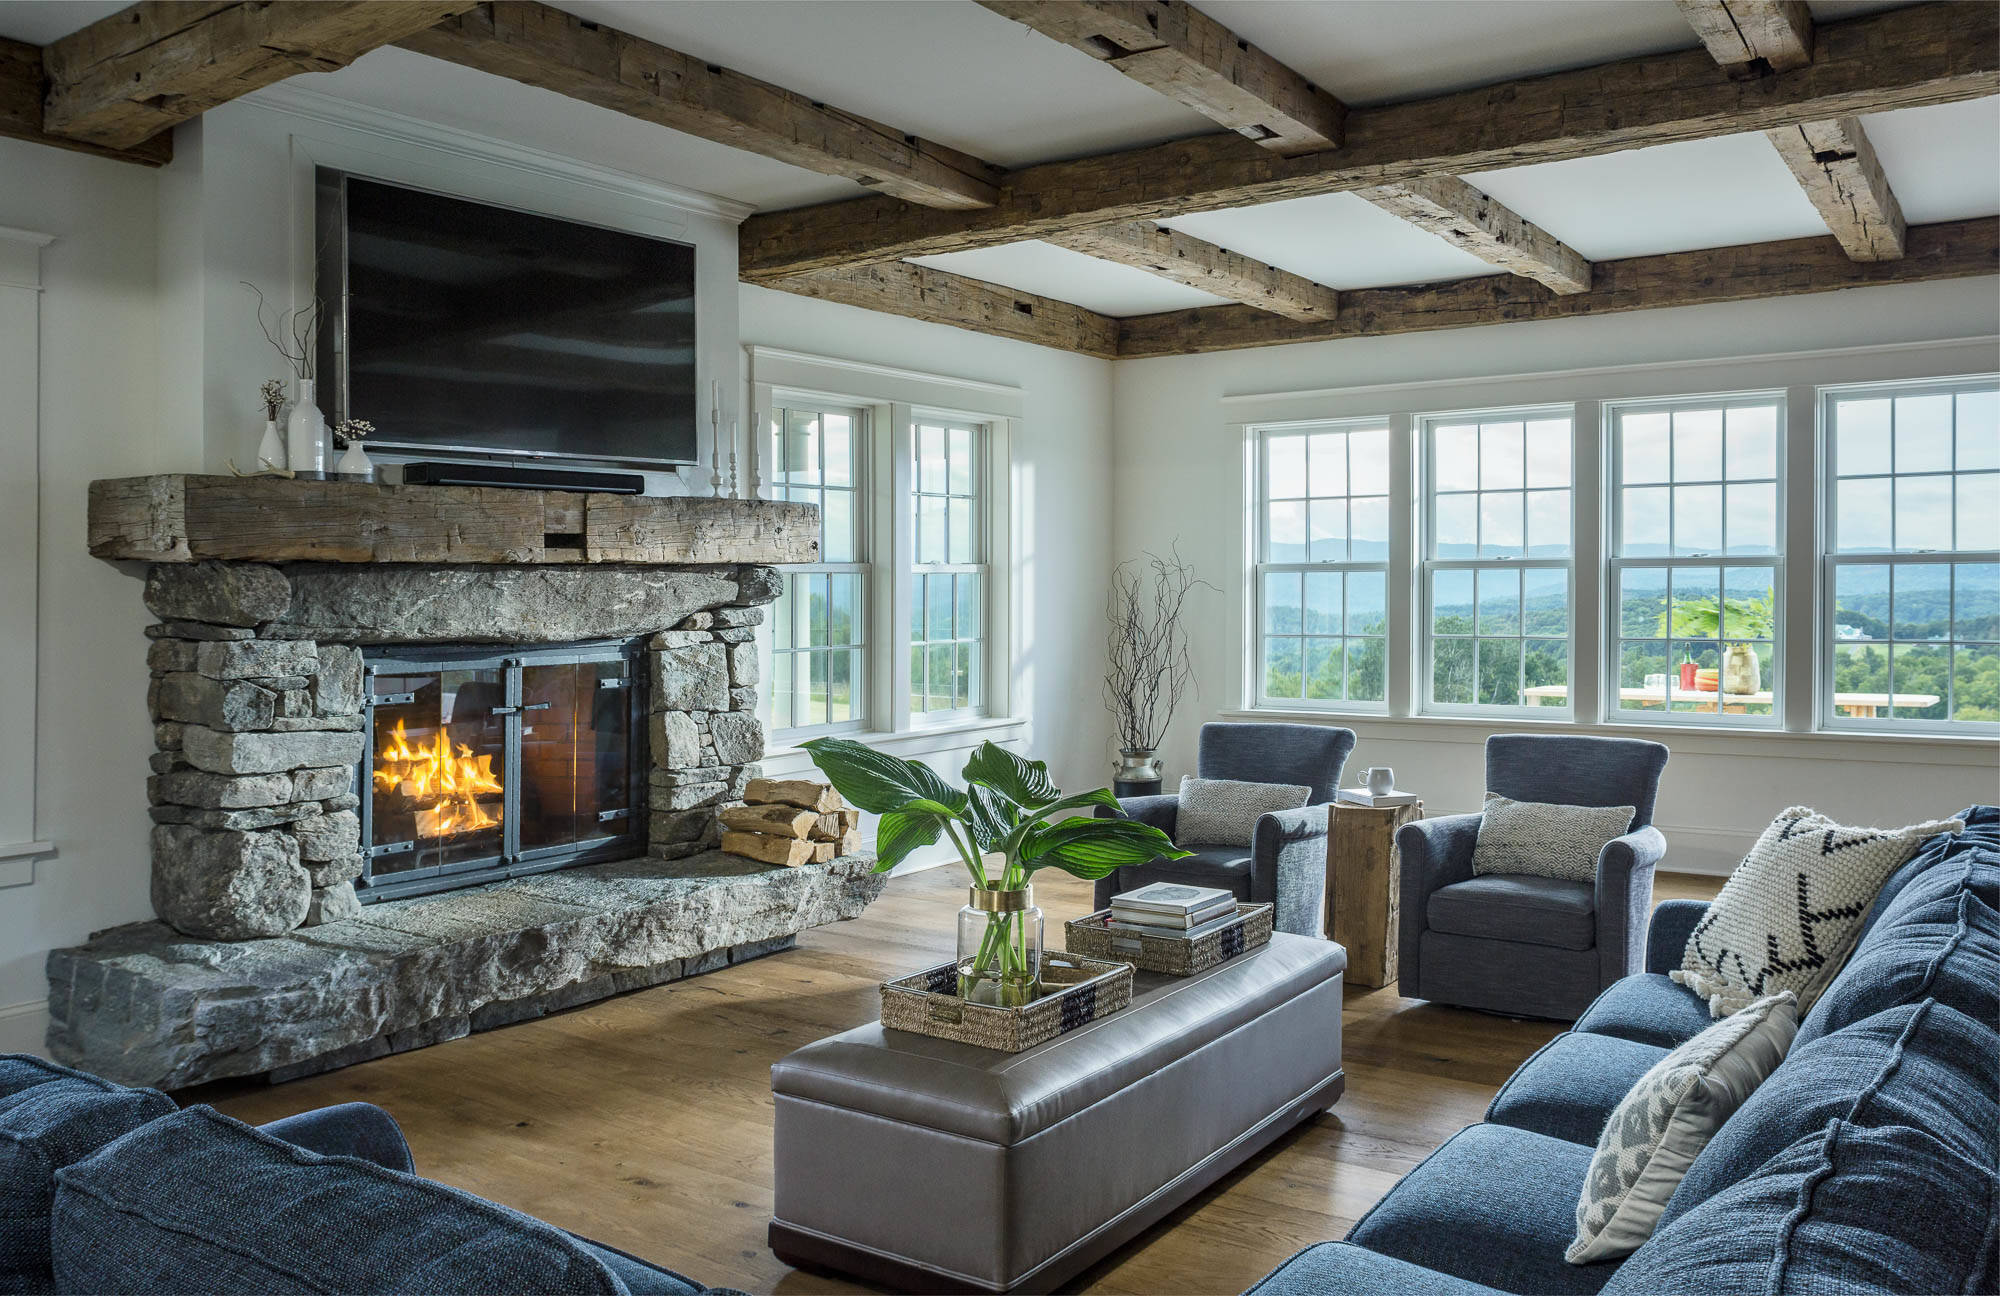 75 Beautiful Farmhouse Living Room With A Wall Mounted Tv Pictures Ideas March 2021 Houzz